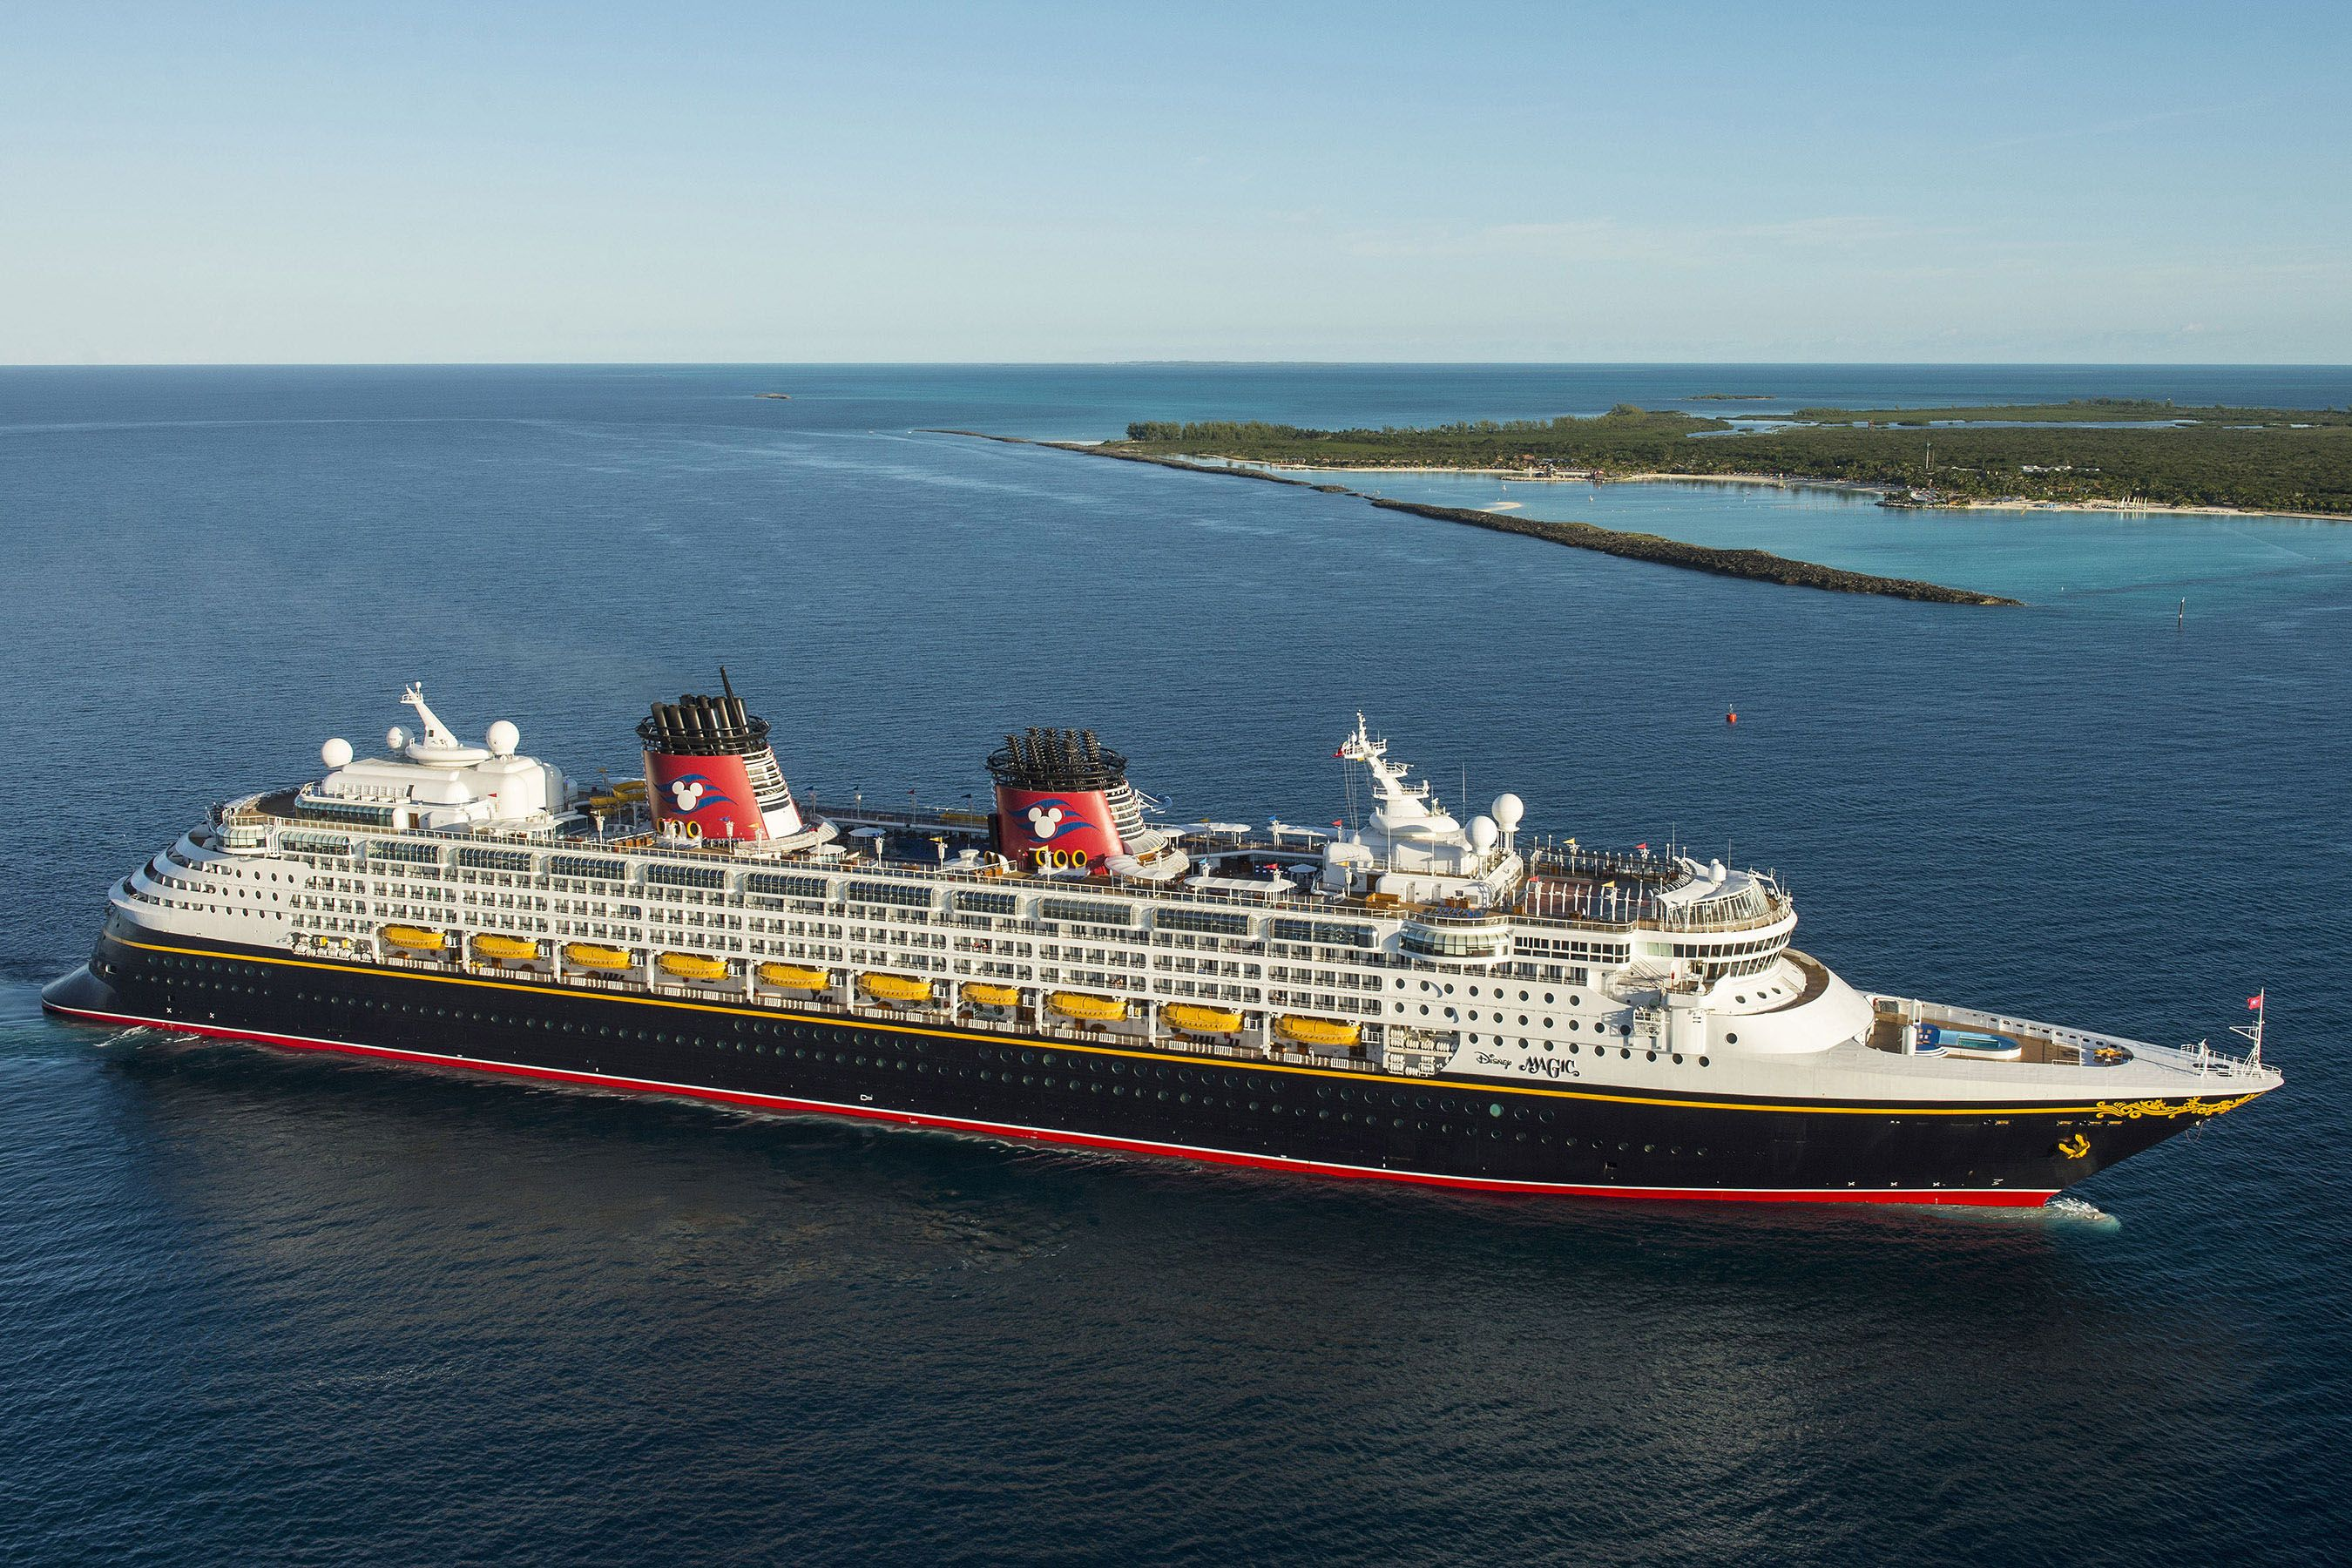 Disney cruise line announces changes to final payment and